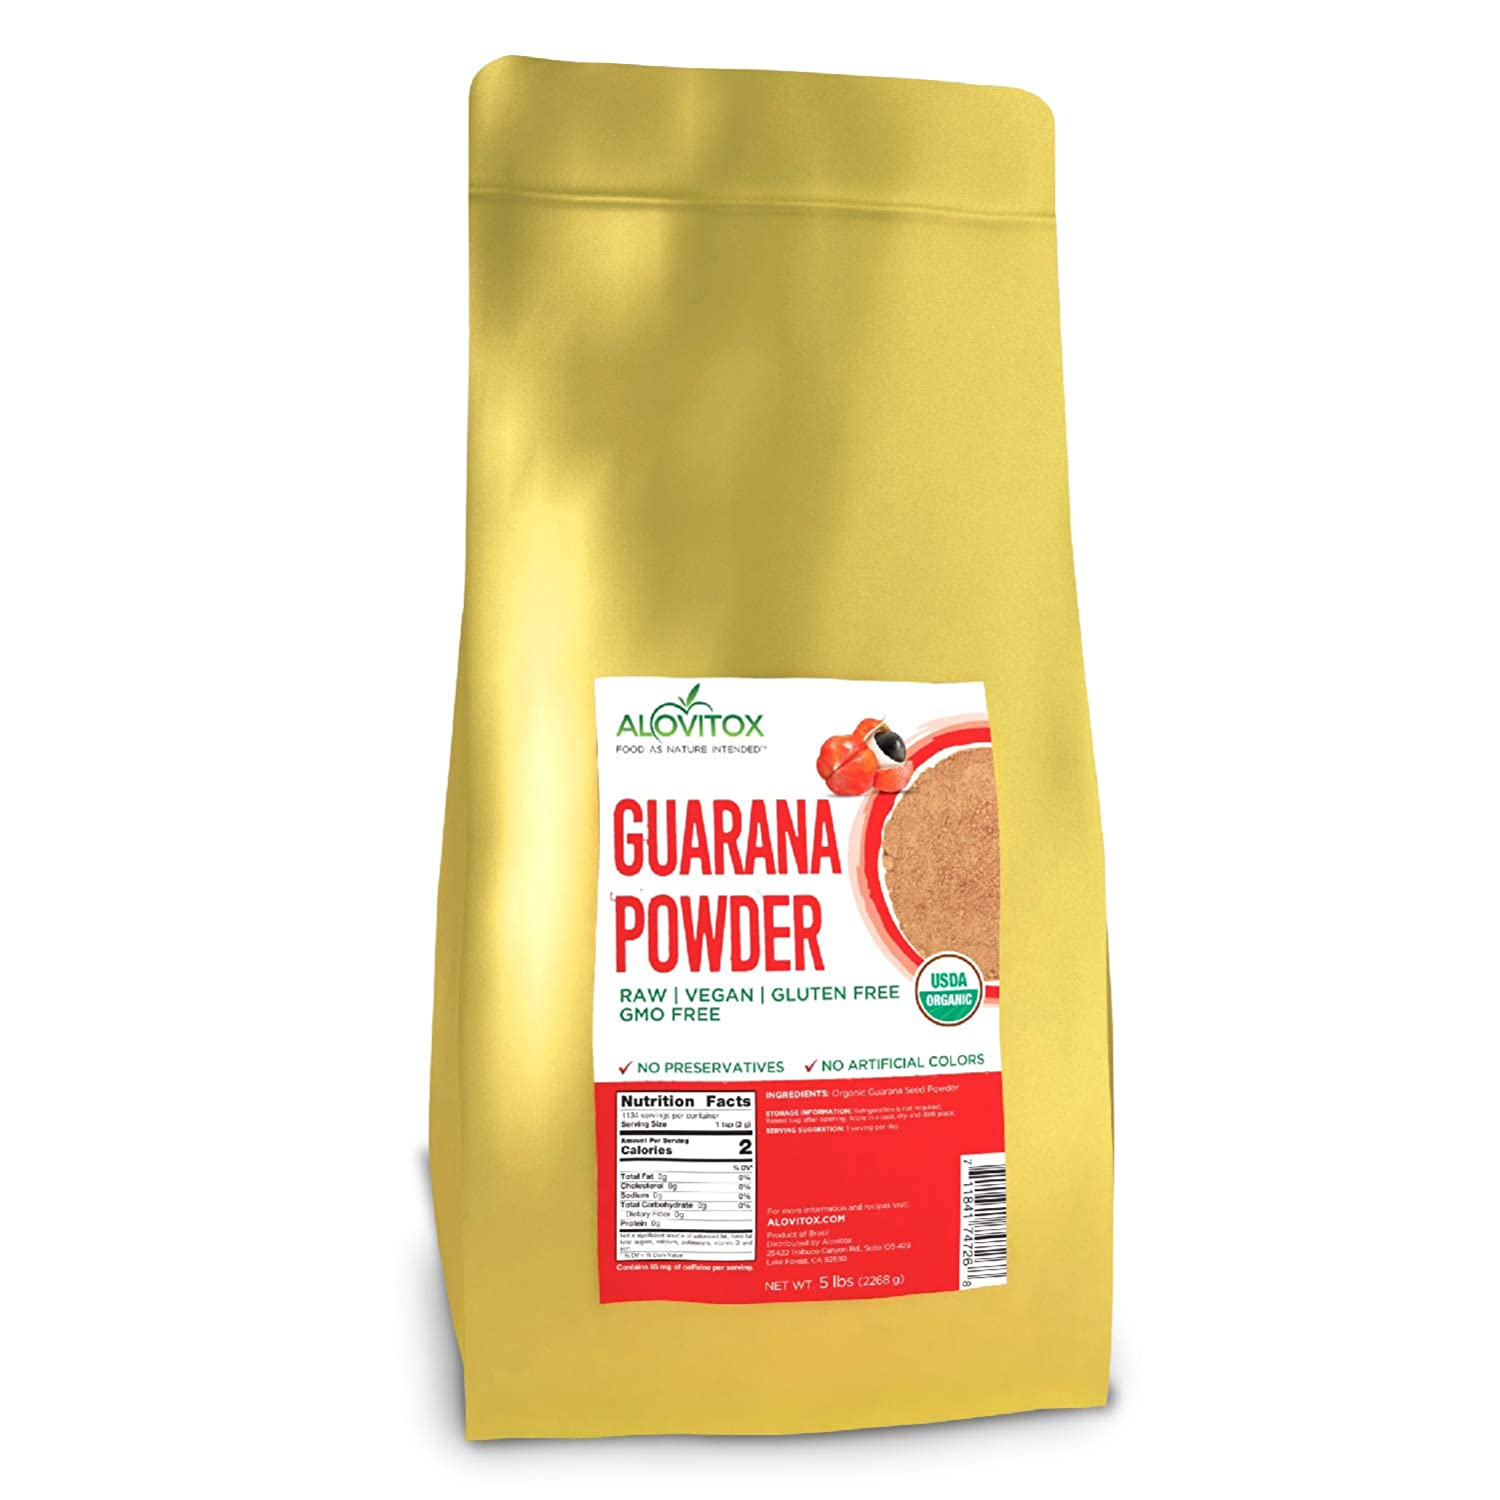 Organic Guarana Weekly SEAL limited product update Seed Powder by Boostin Alovitox Natural Energy